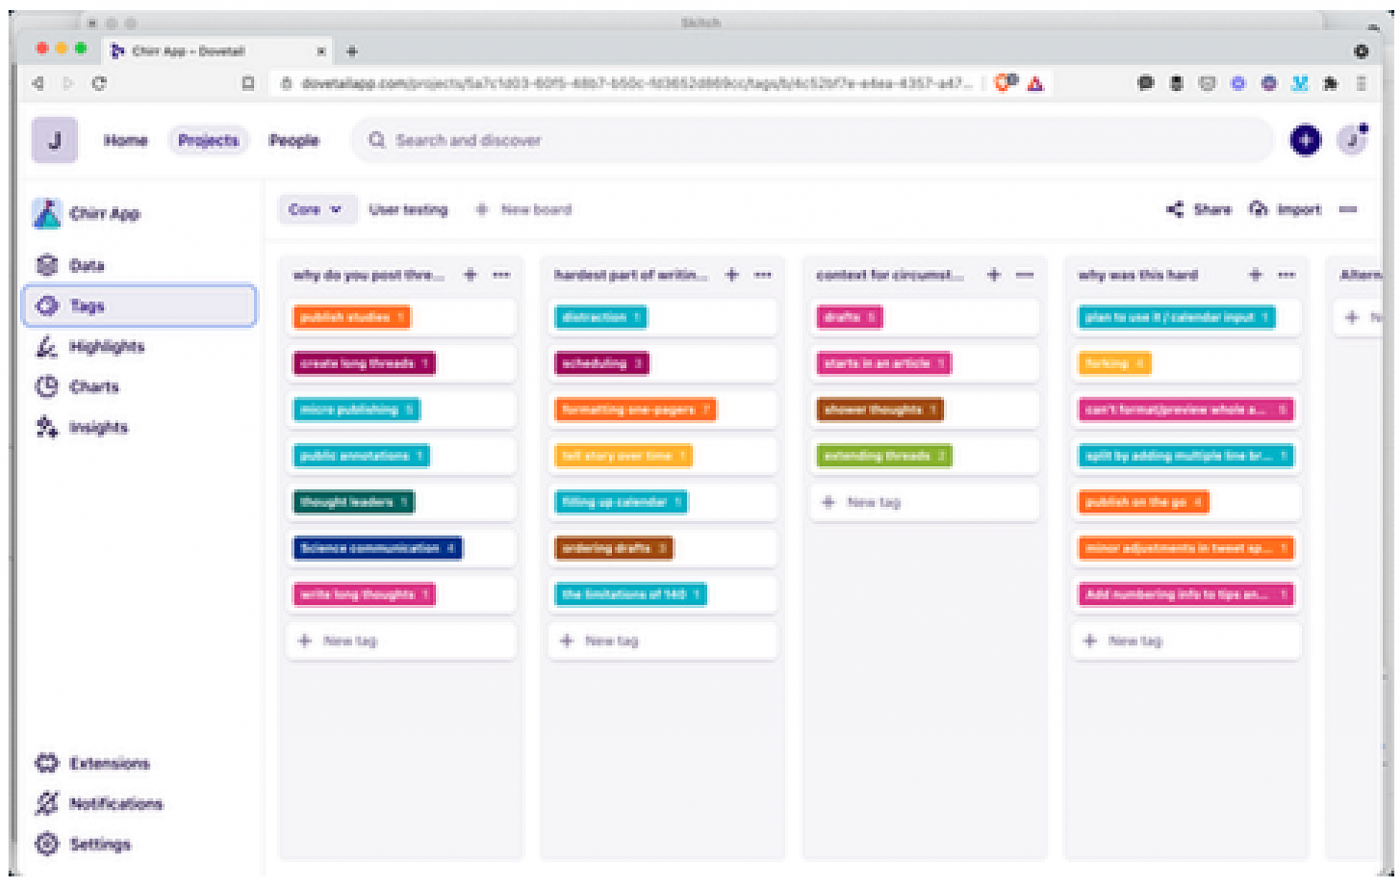 Organising customer discovery insights in column on a Kanban board